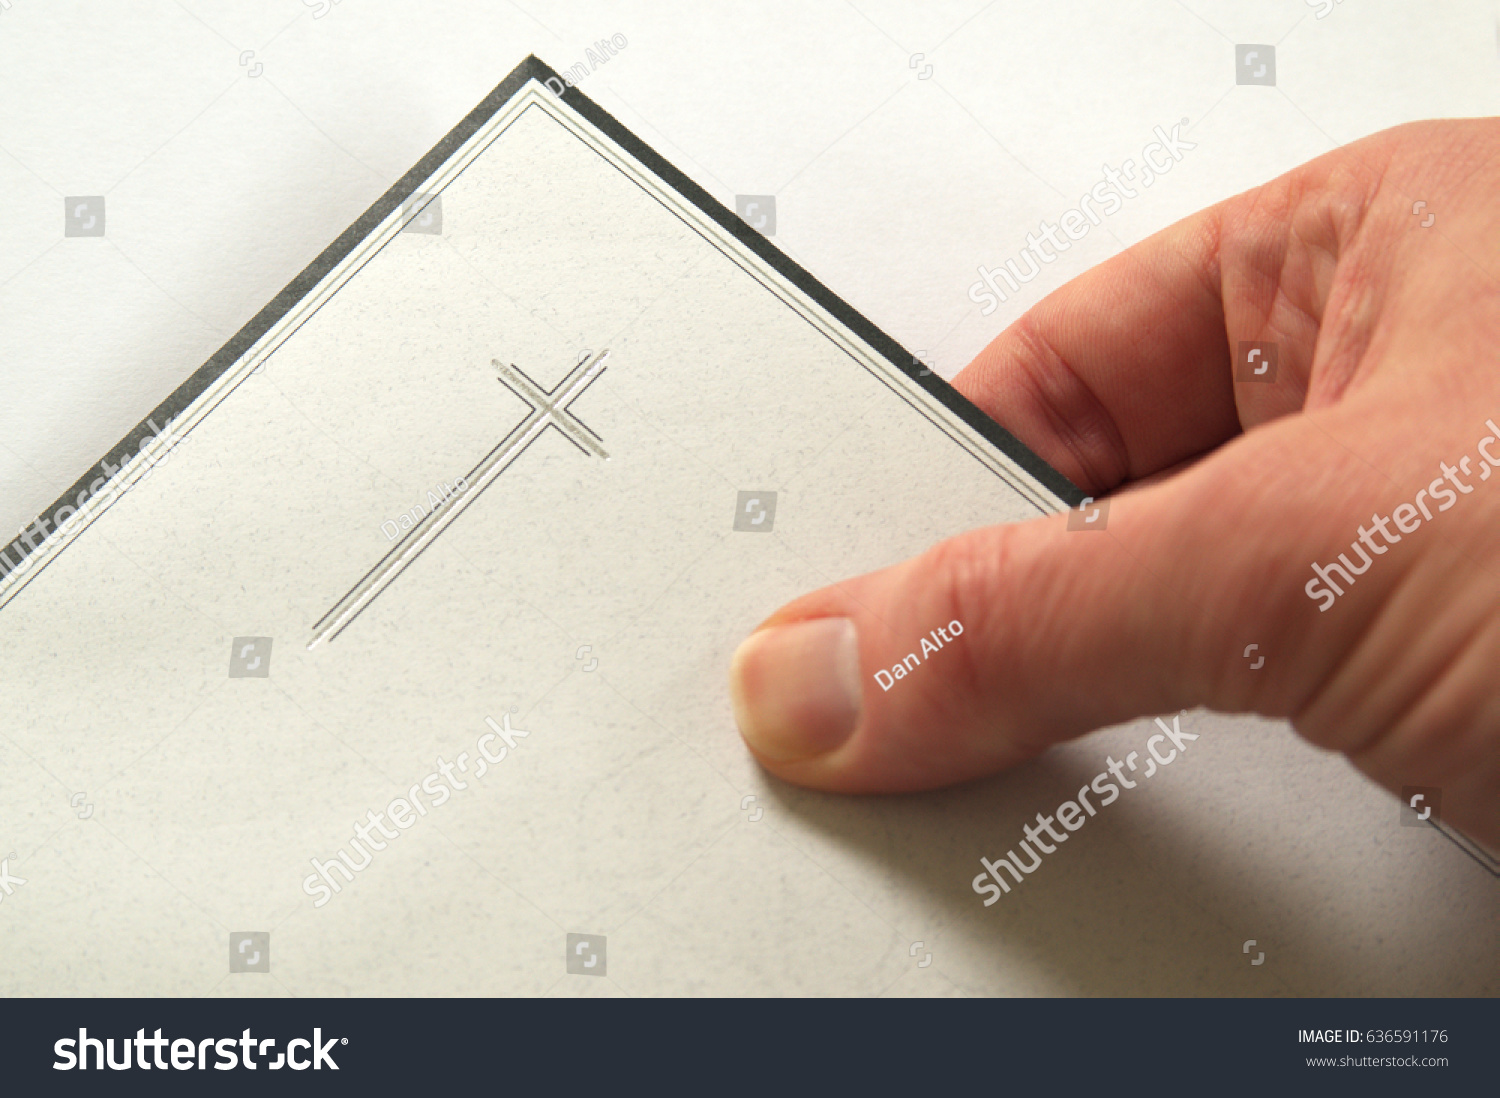 Condolences Hand Holding Envelope Invitation Funeral Stock Photo ...